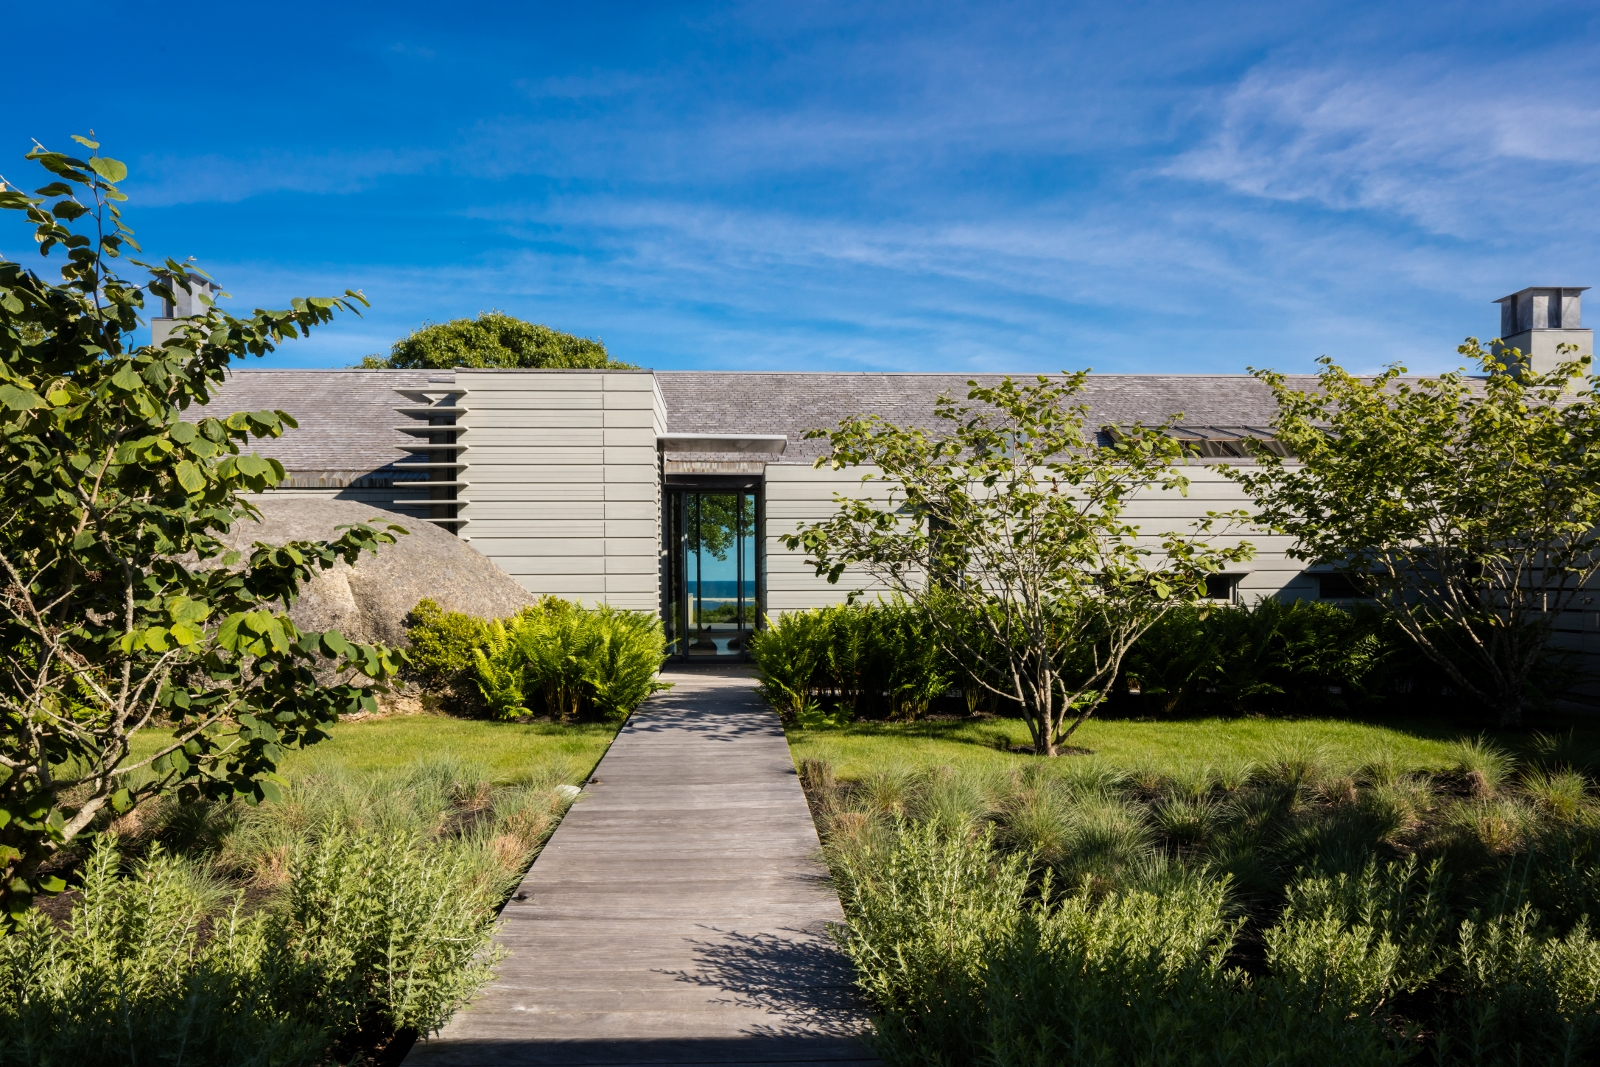 Single Family Home for Sale at Spectacular Estate with Private Beach 8 Snail Road Chilmark, Massachusetts 02535 United States